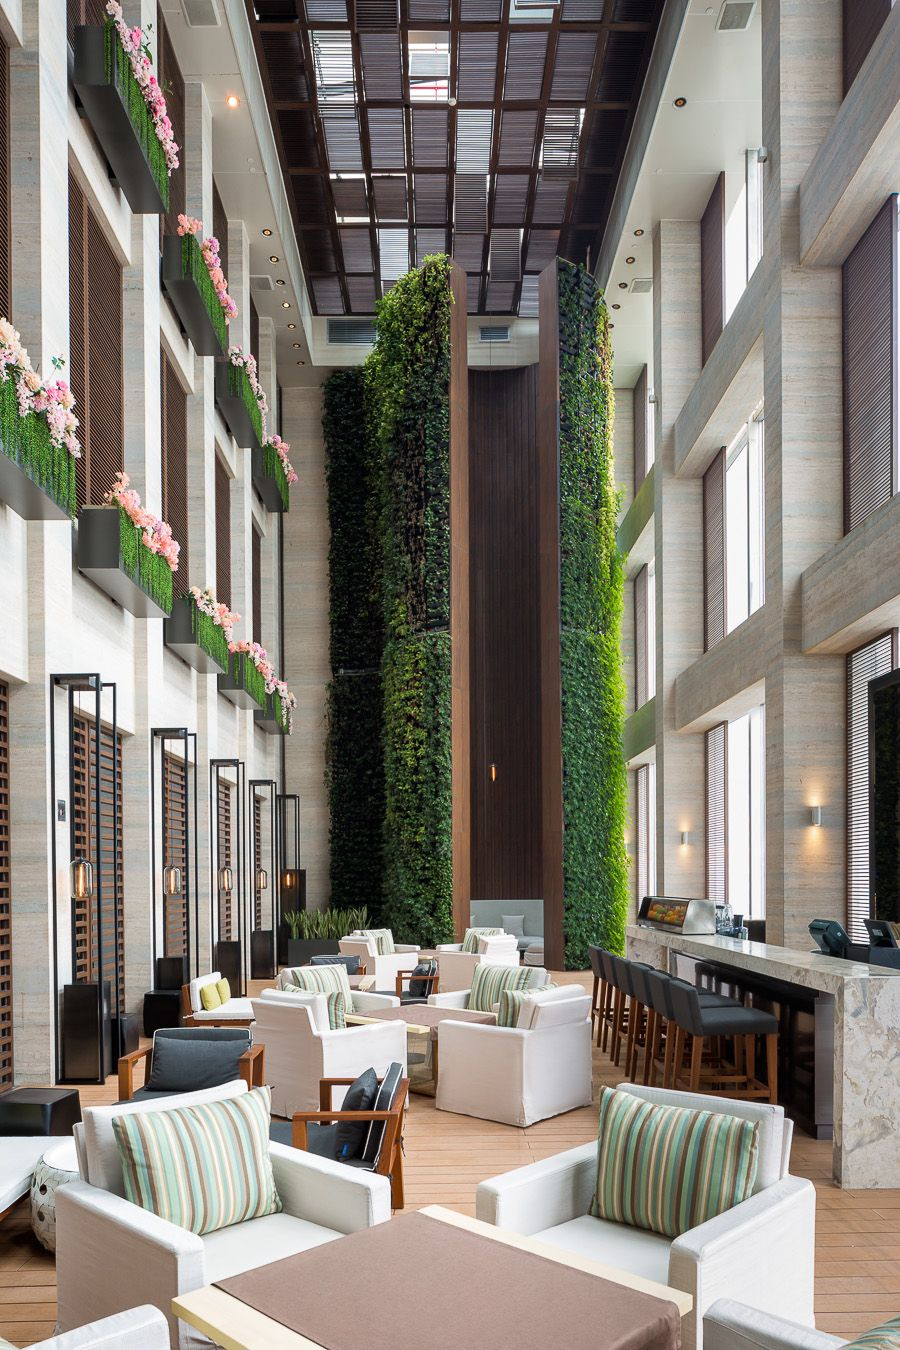 Modern Hotel Lobby Design: W Guangzhou Hotel & Residences, China Designed By Rocco